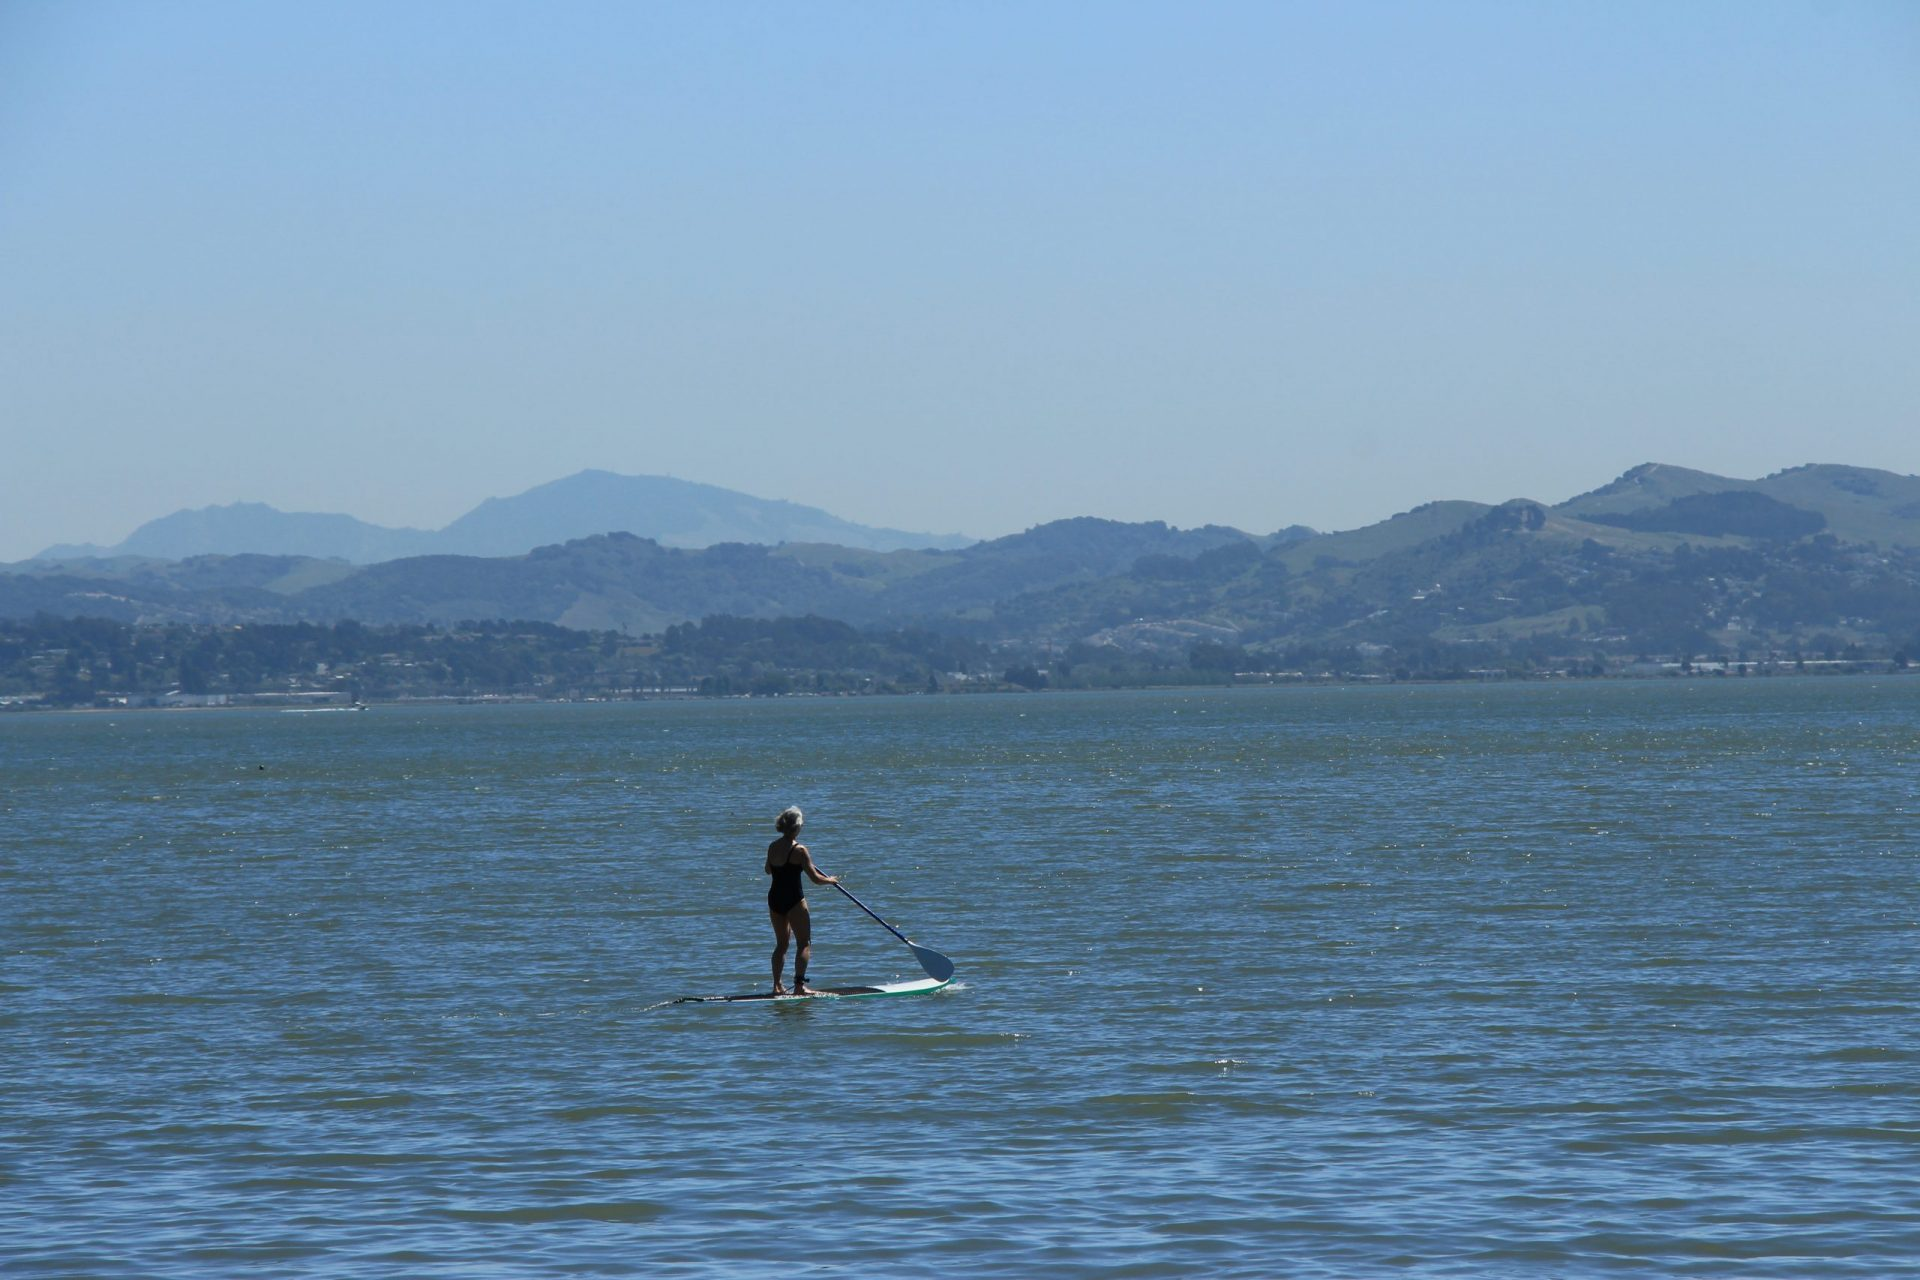 standup paddler on the ater with hills in the distance